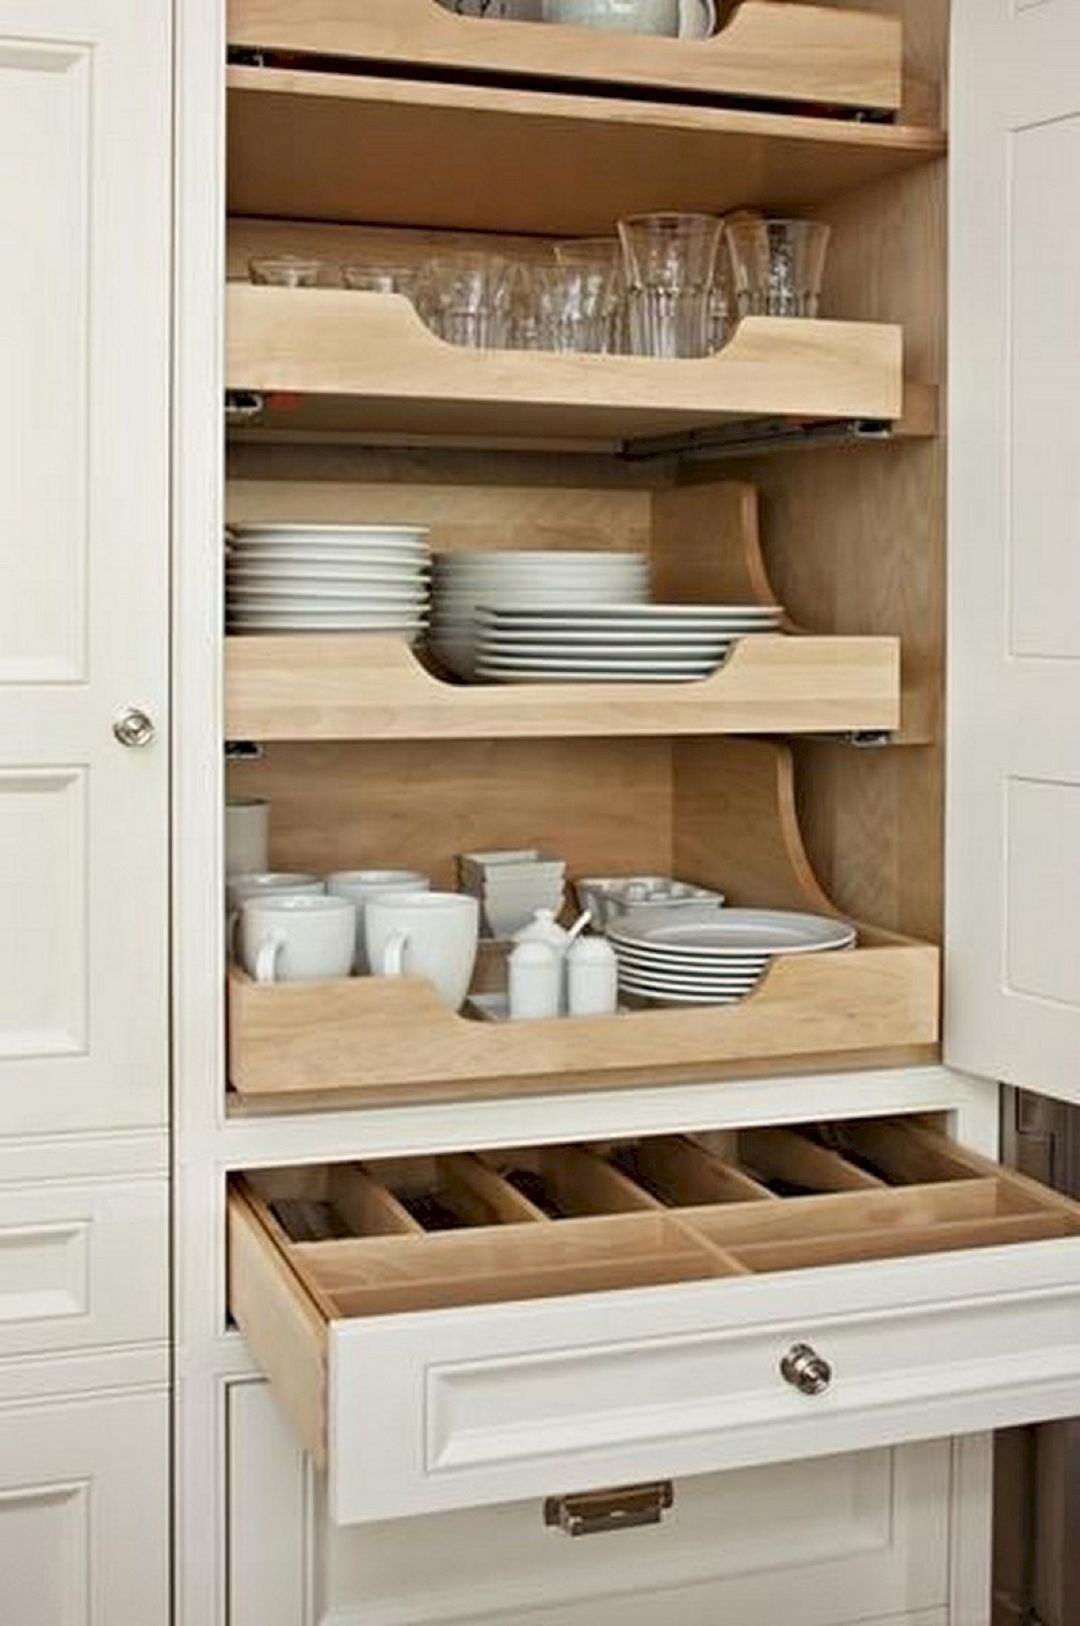 Kitchen Cupboard Space Saving Ideas Tiny Kitchen Design Space Saving Kitchen Kitchen Design Small Space